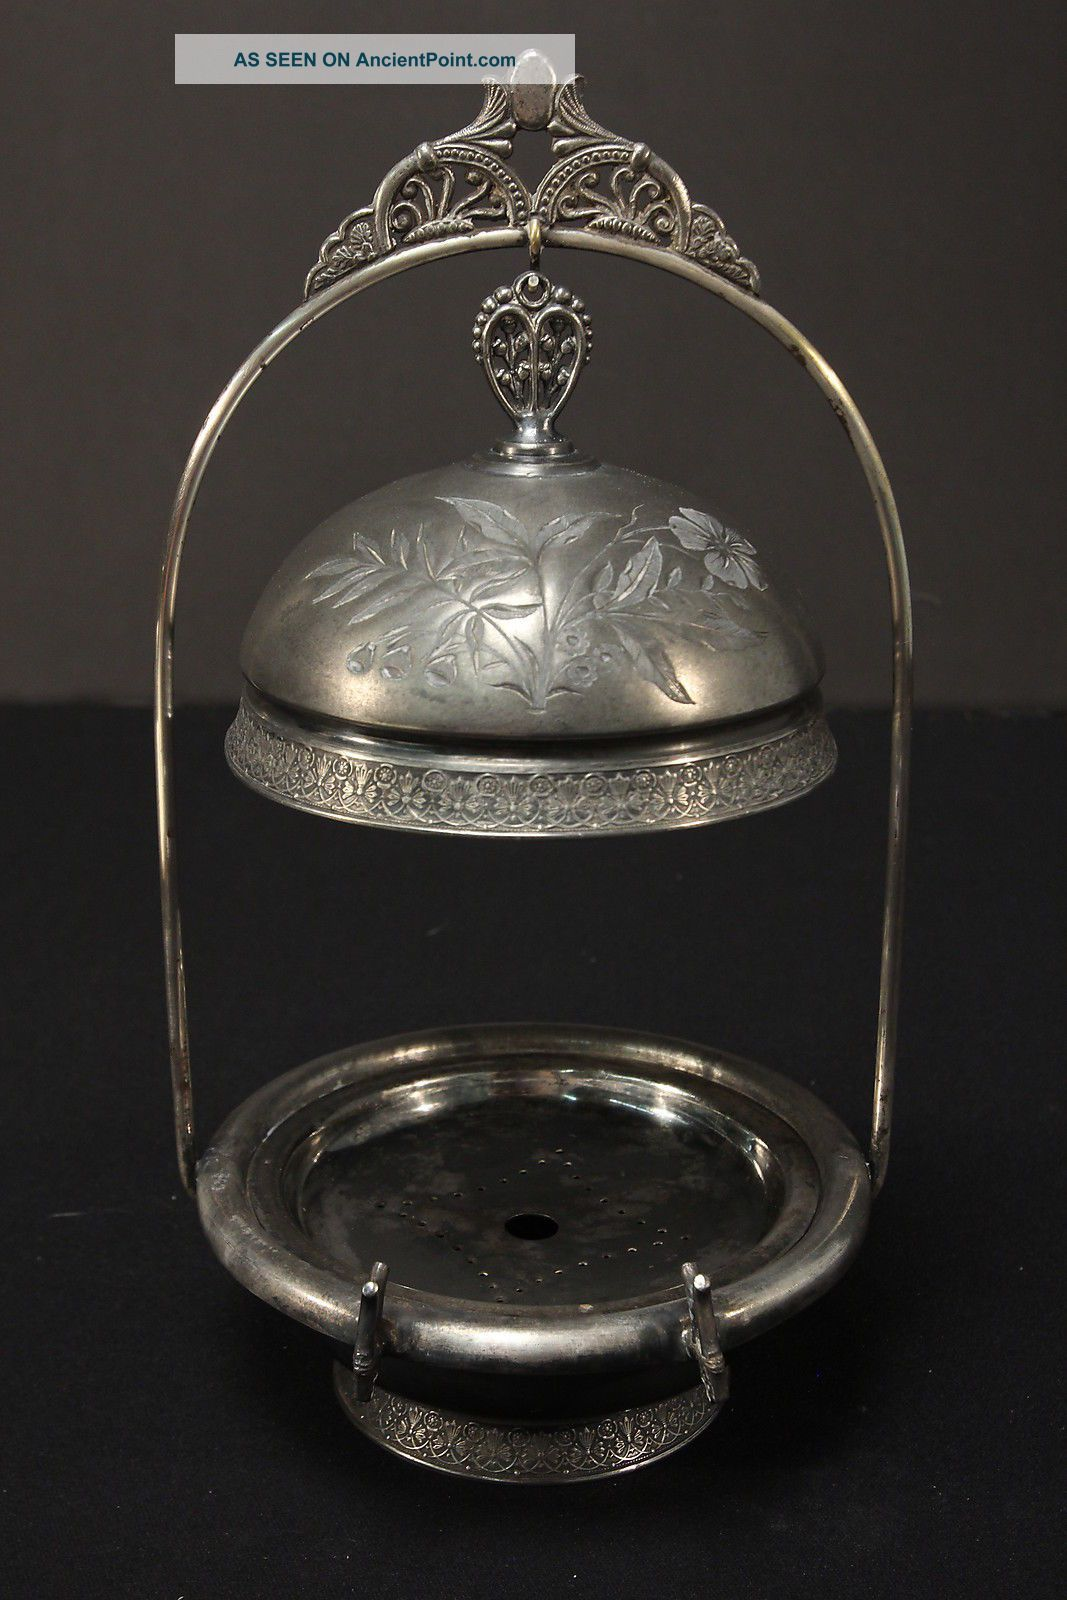 Pairpoint Quadruple Silverplate Antique Basket Stand Domed Butter Server Dish Butter Dishes photo